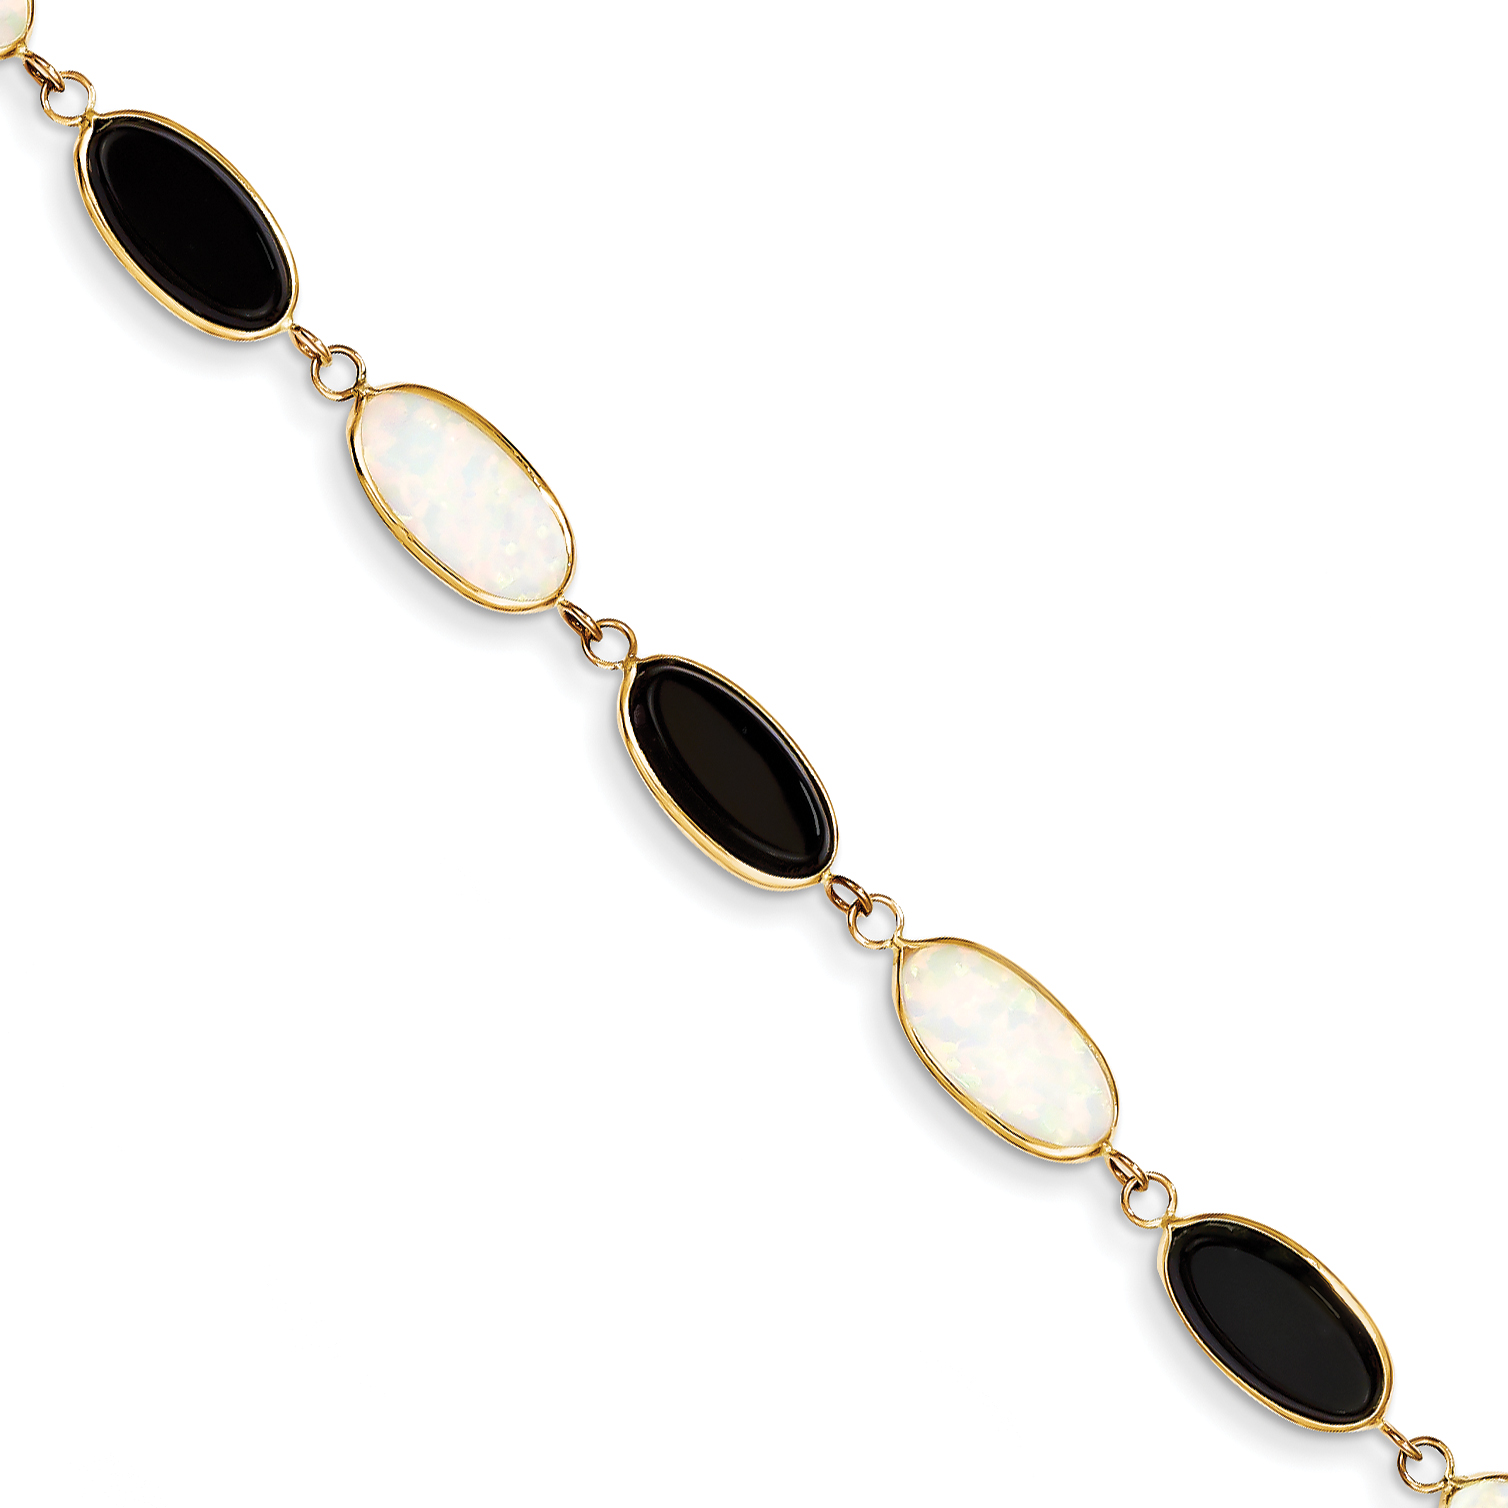 14k 7.5in Onyx & Imitation Opal Bracelet by CoutureJewelers